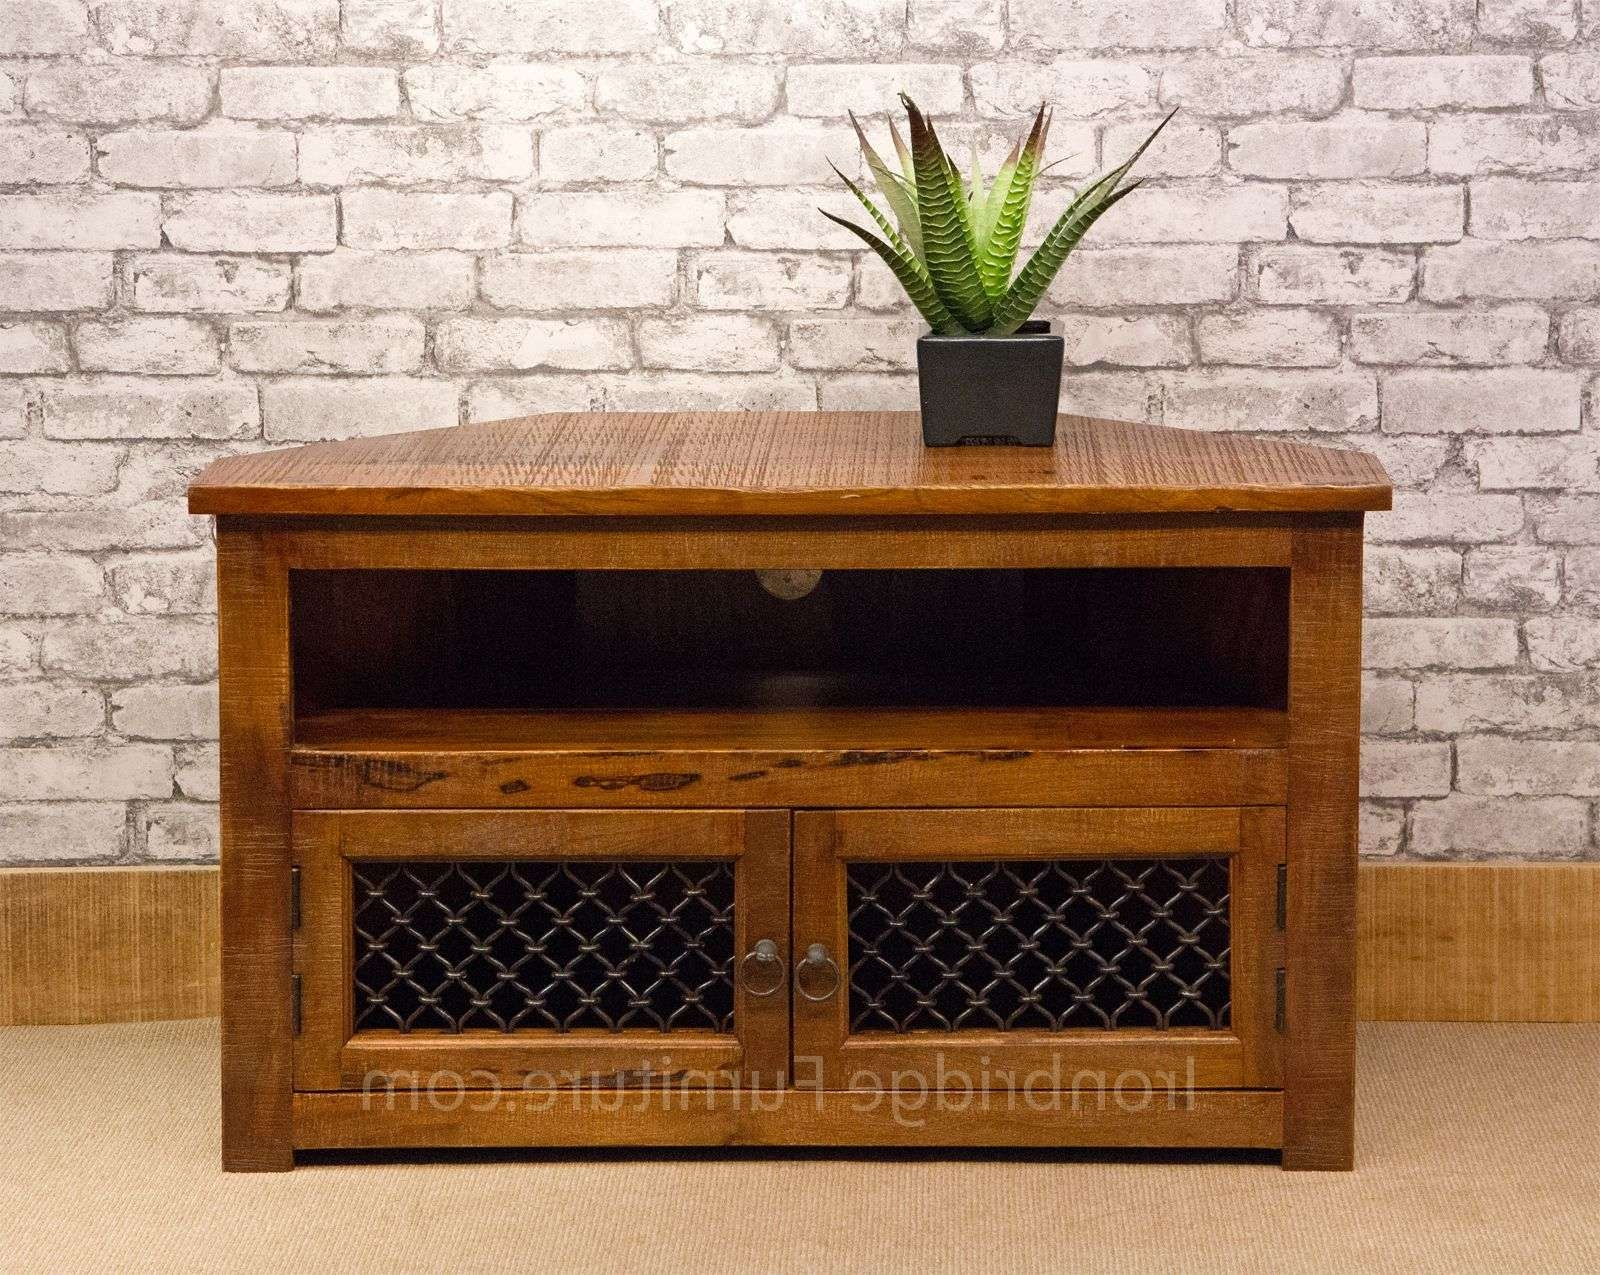 13 Jali Rustic Farm Corner Tv Stand 100cm Inside Tv Stands 100cm (View 1 of 15)